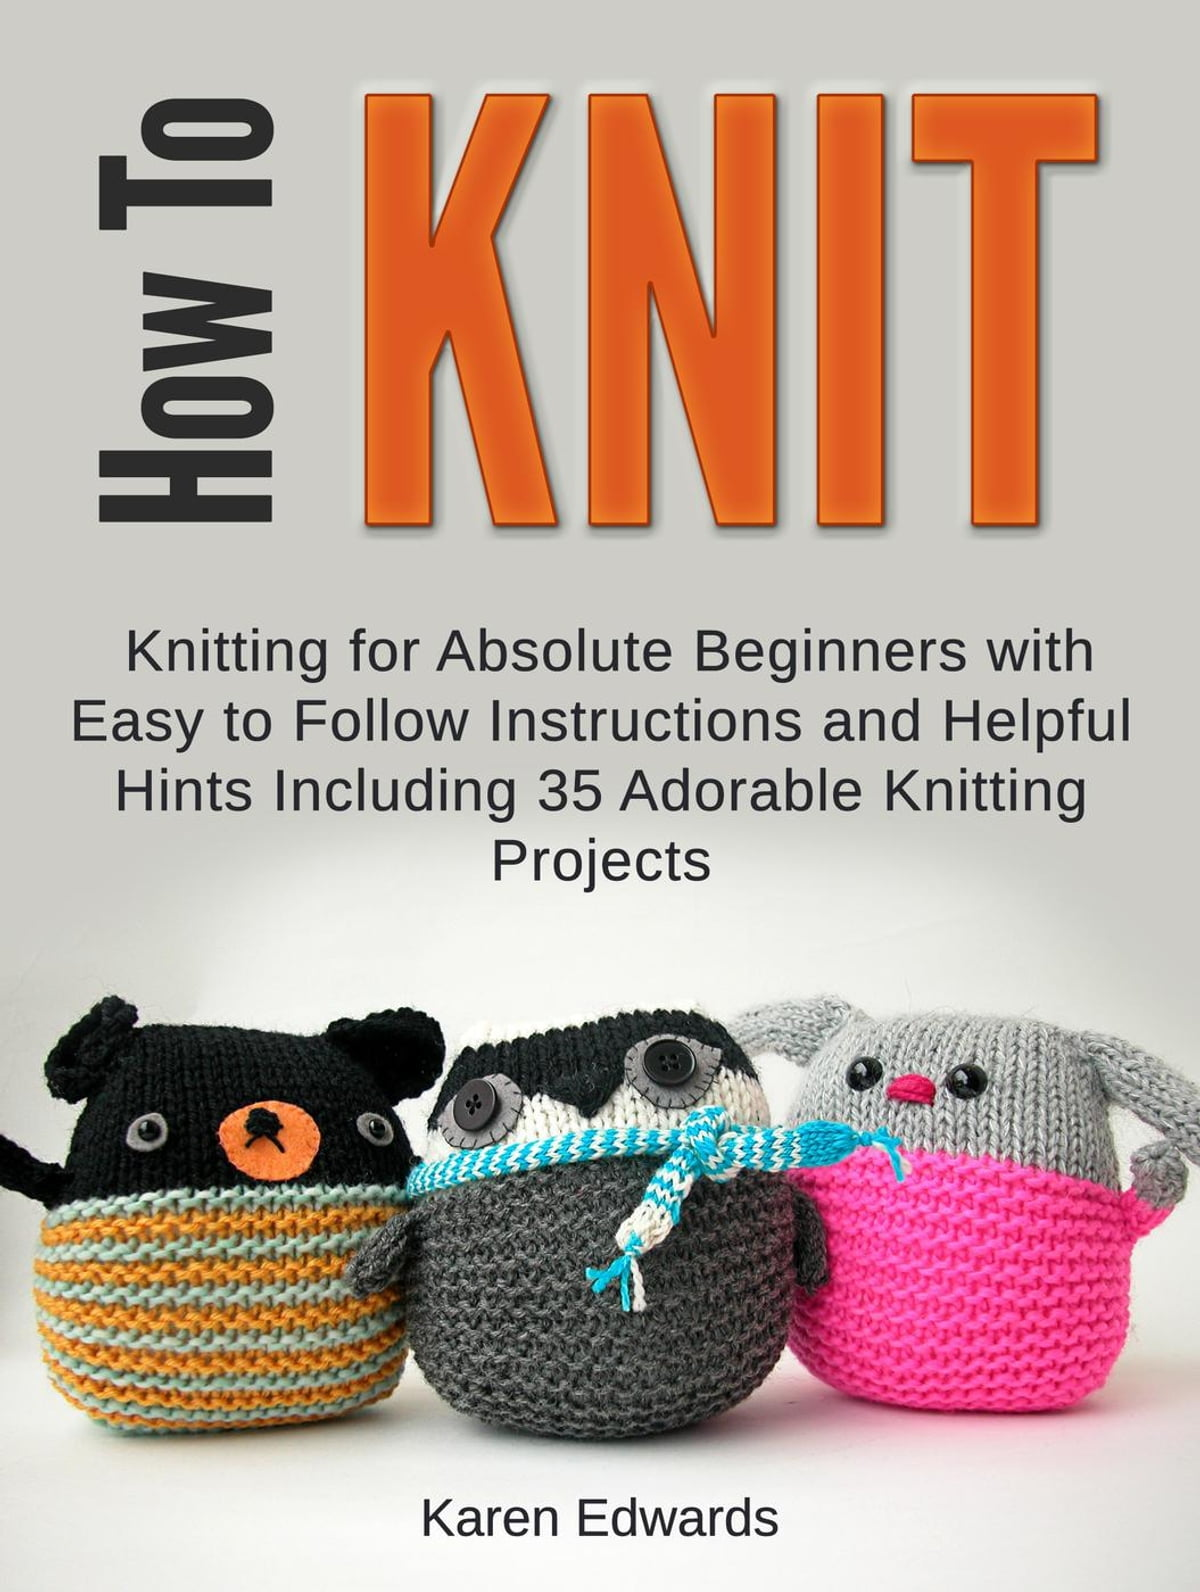 how to knit knitting for absolute beginners with easy to follow instructions and helpful hints including 35 adorable knitting projects